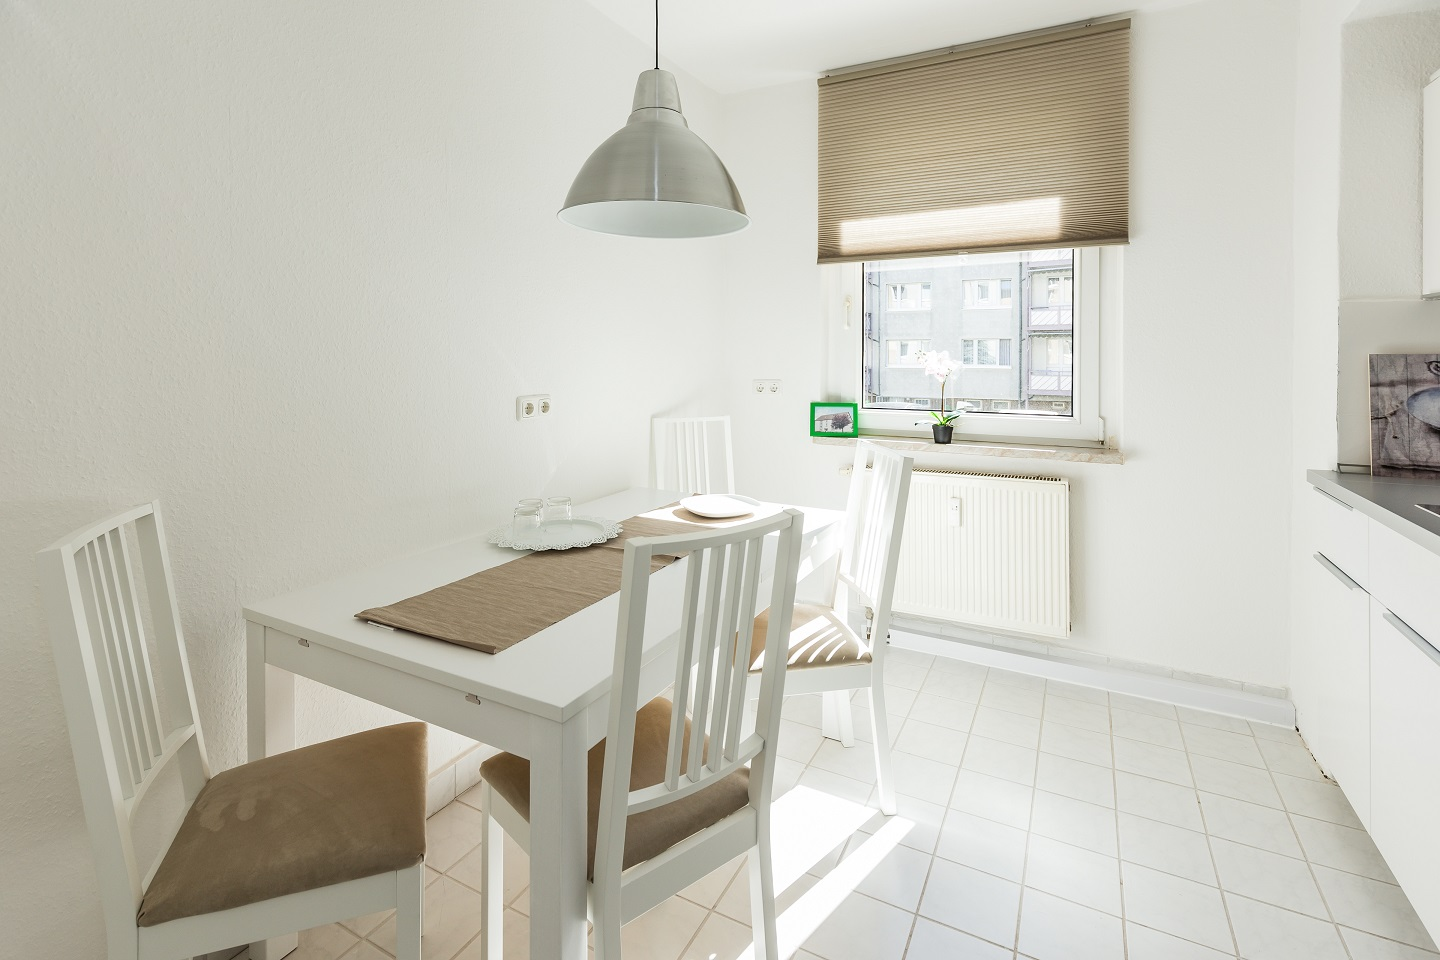 Wohnung in Cuxhaven mieten Grand City Property